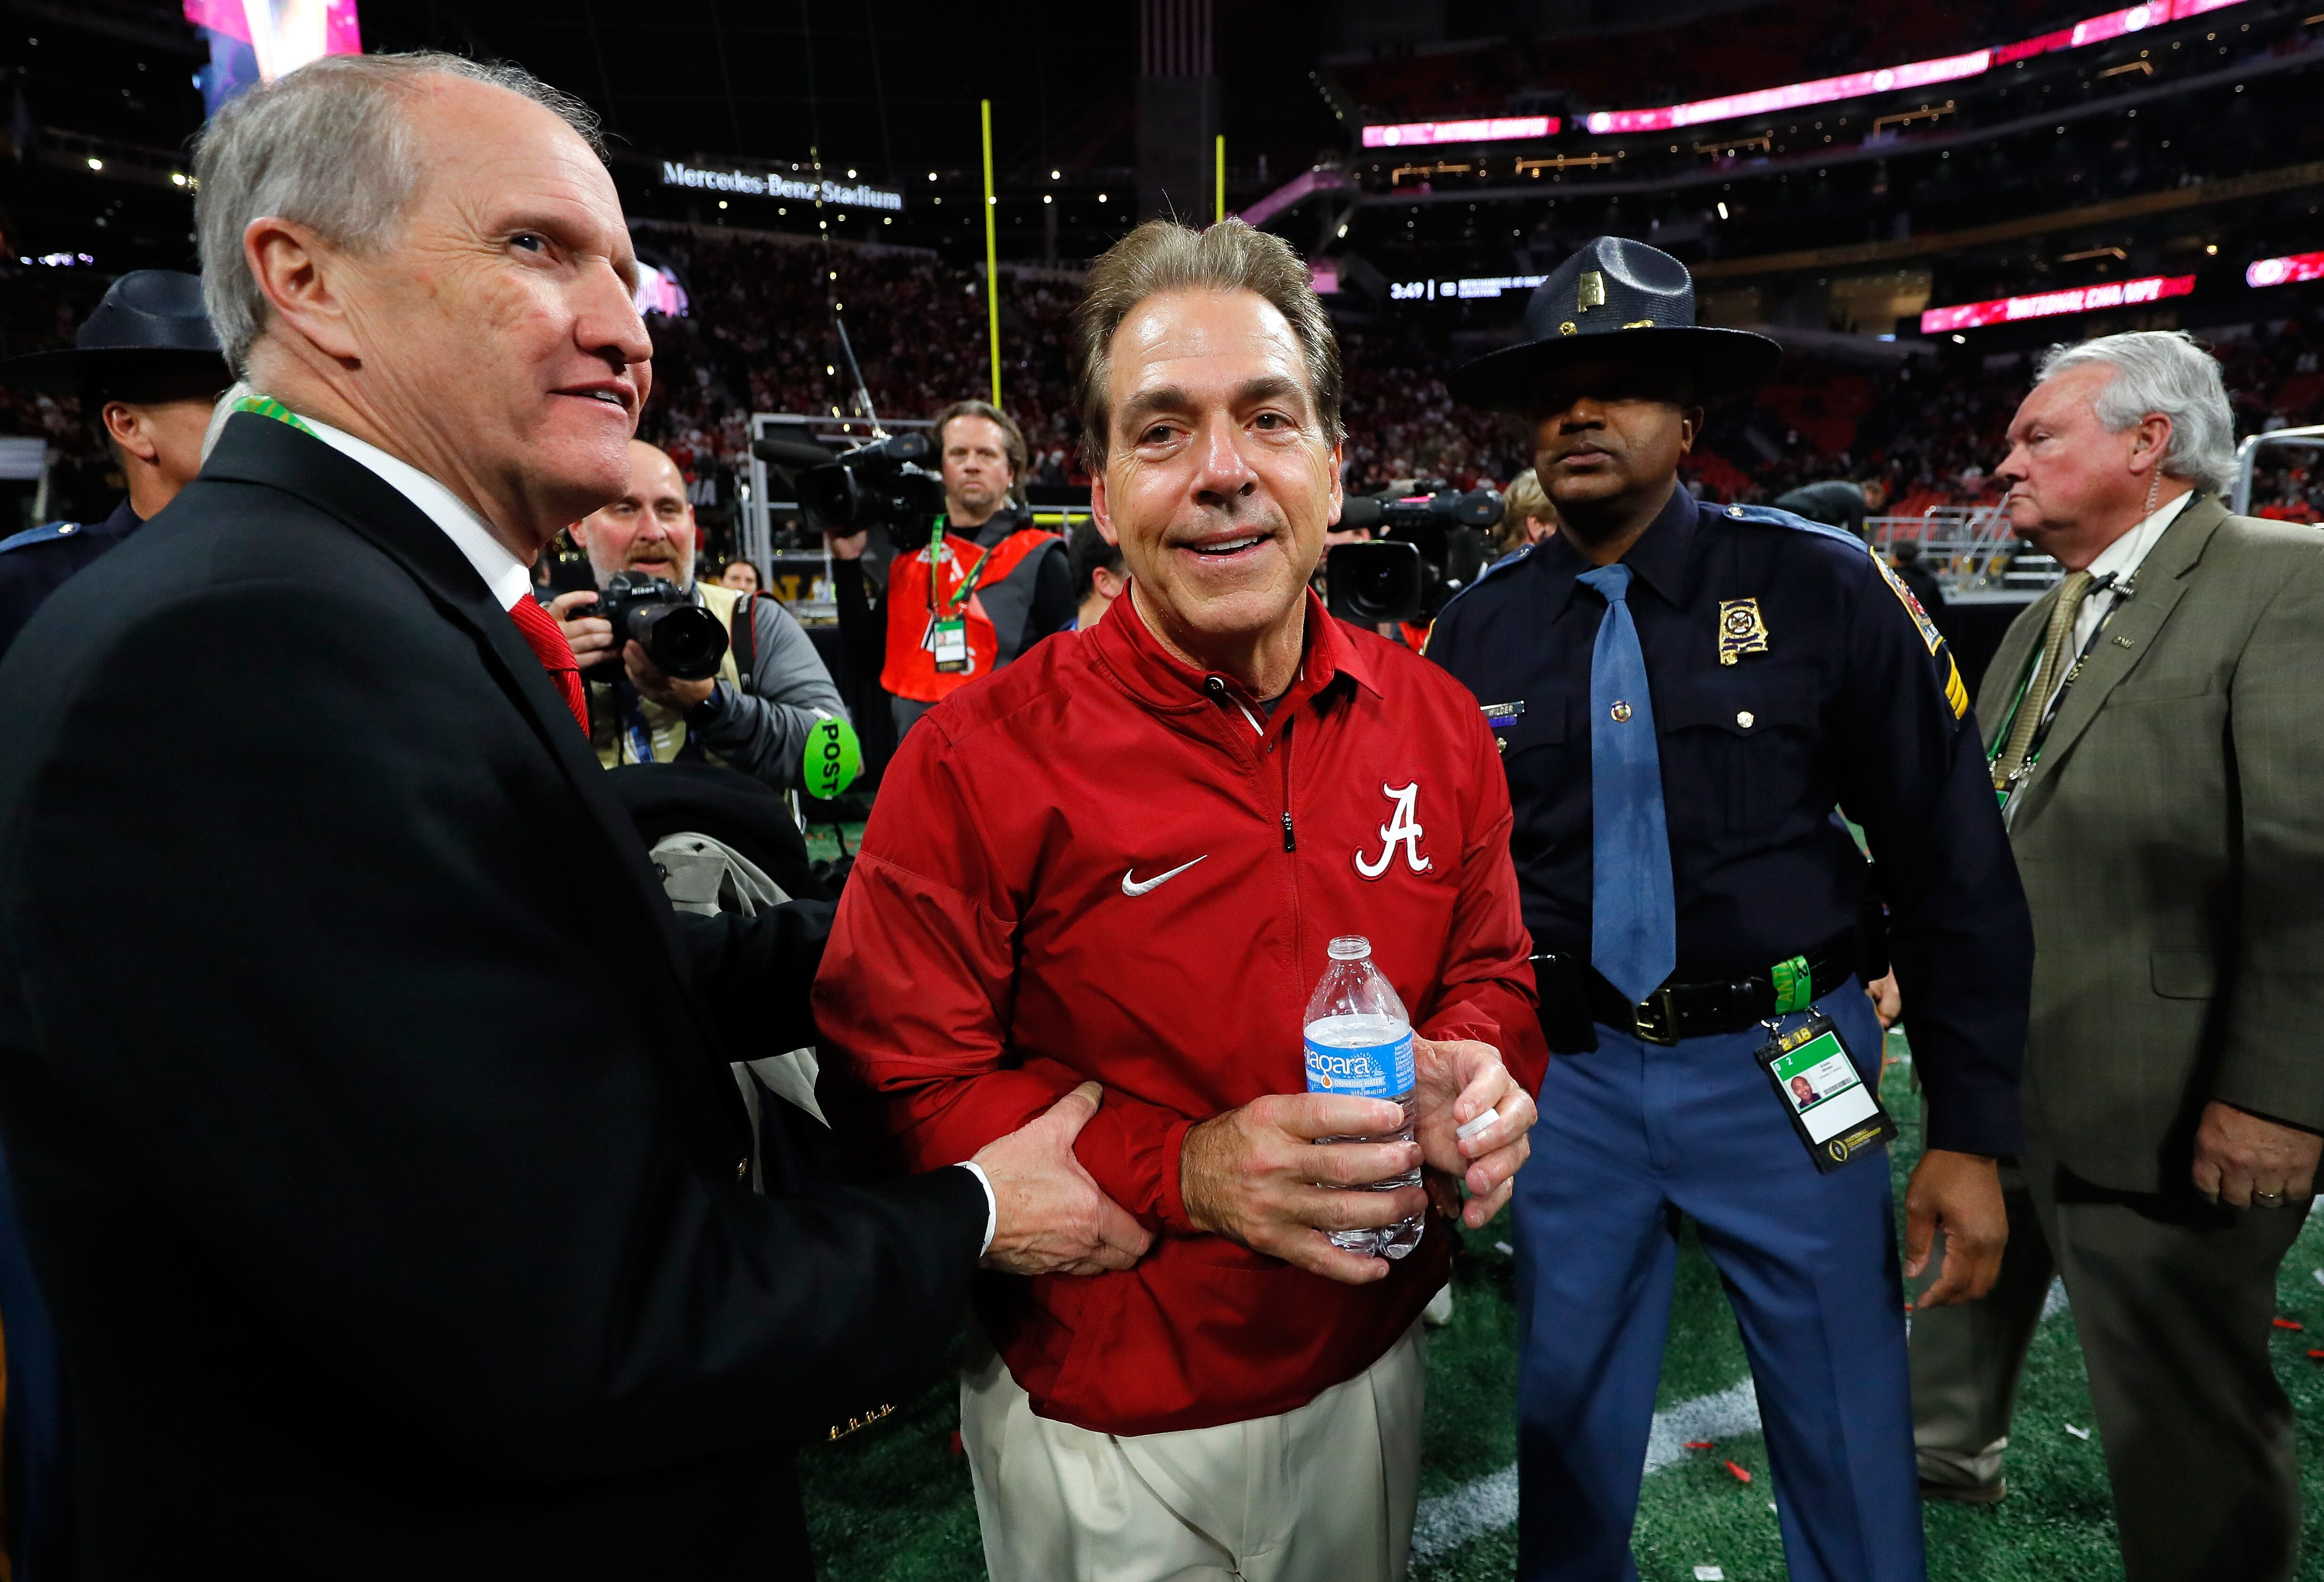 902791444-cfp-national-championship-presented-by-at.jpg